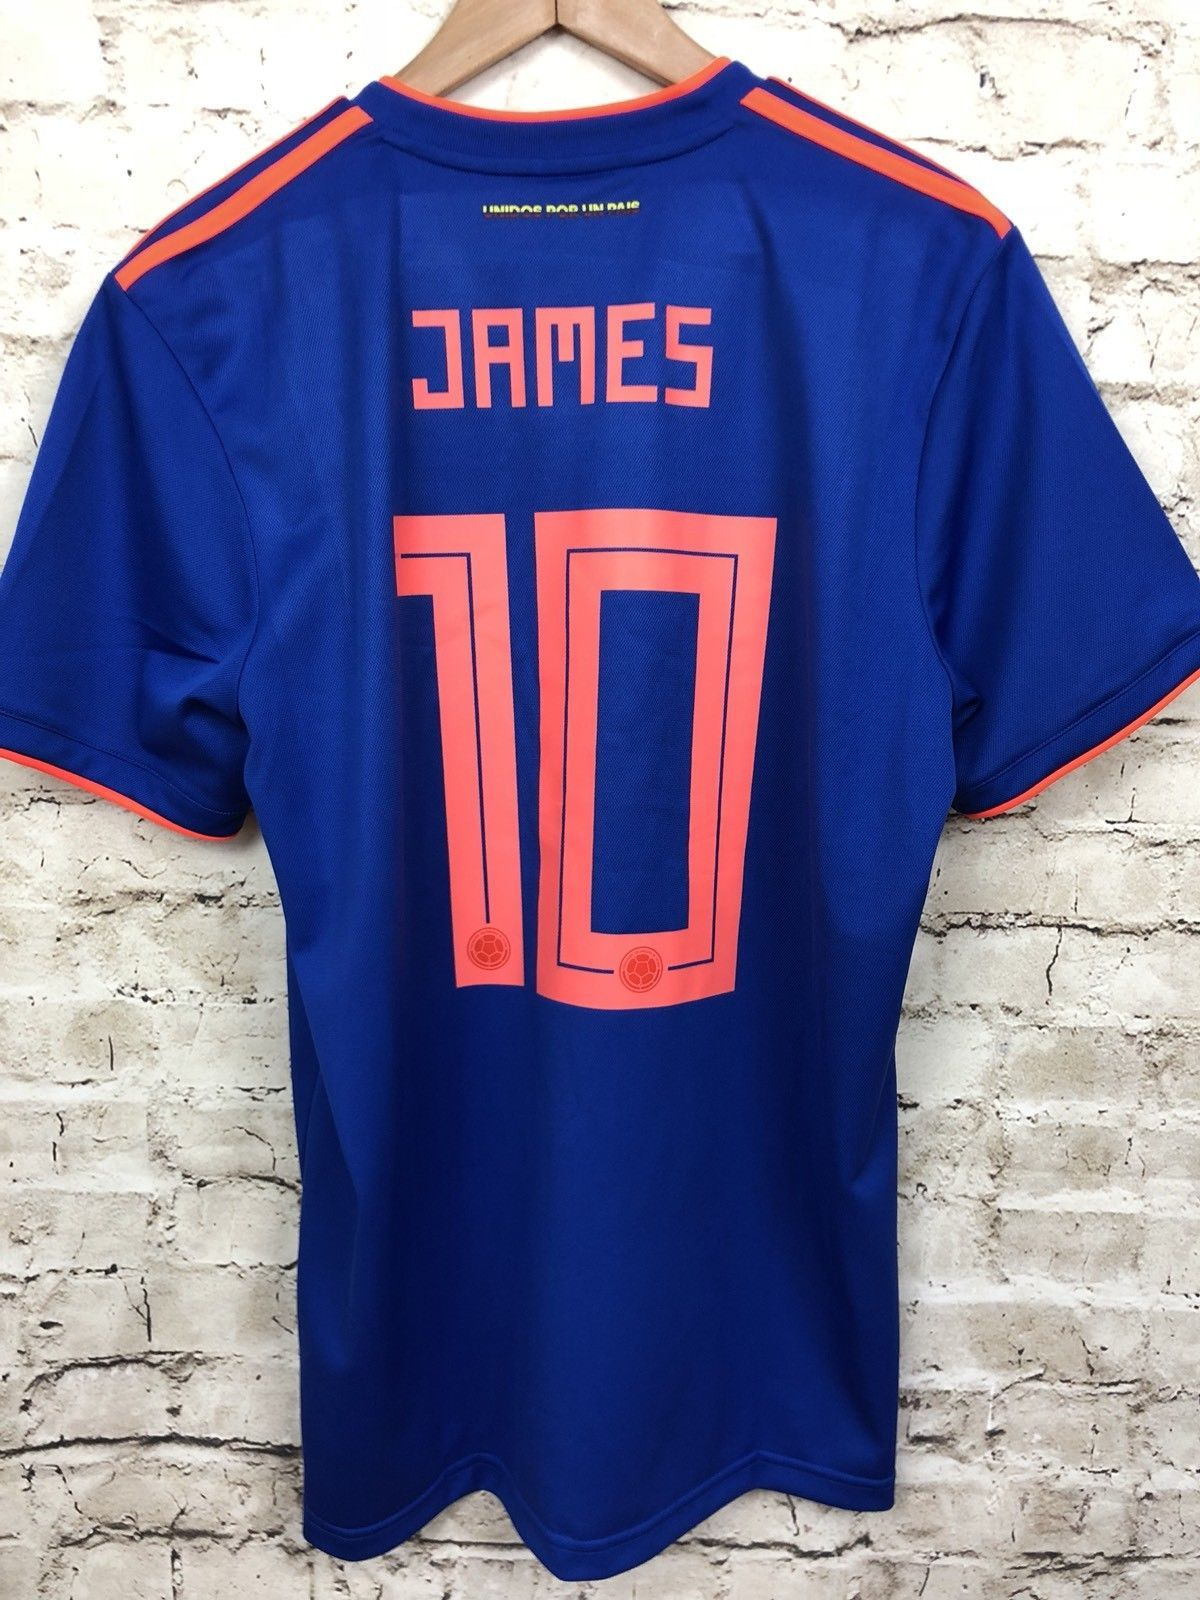 Adidas Colombia James Soccer Jersey Large 2018 World Cup Away New Authentic  Discount Price 129.00 Free Shipping Buy it Now f68367269